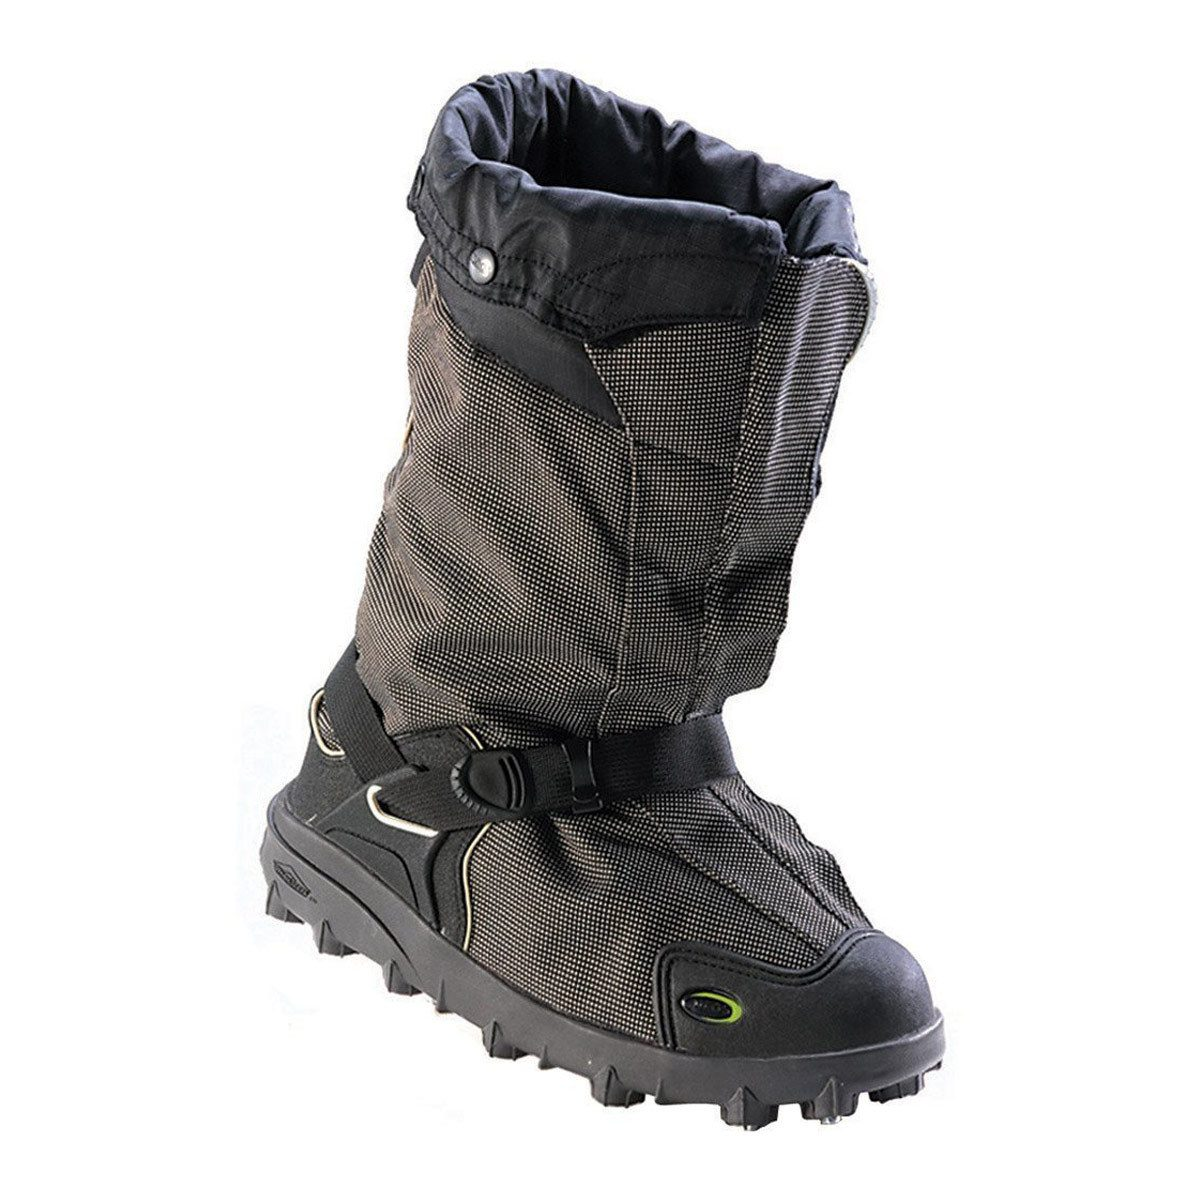 Boots Made for Ice